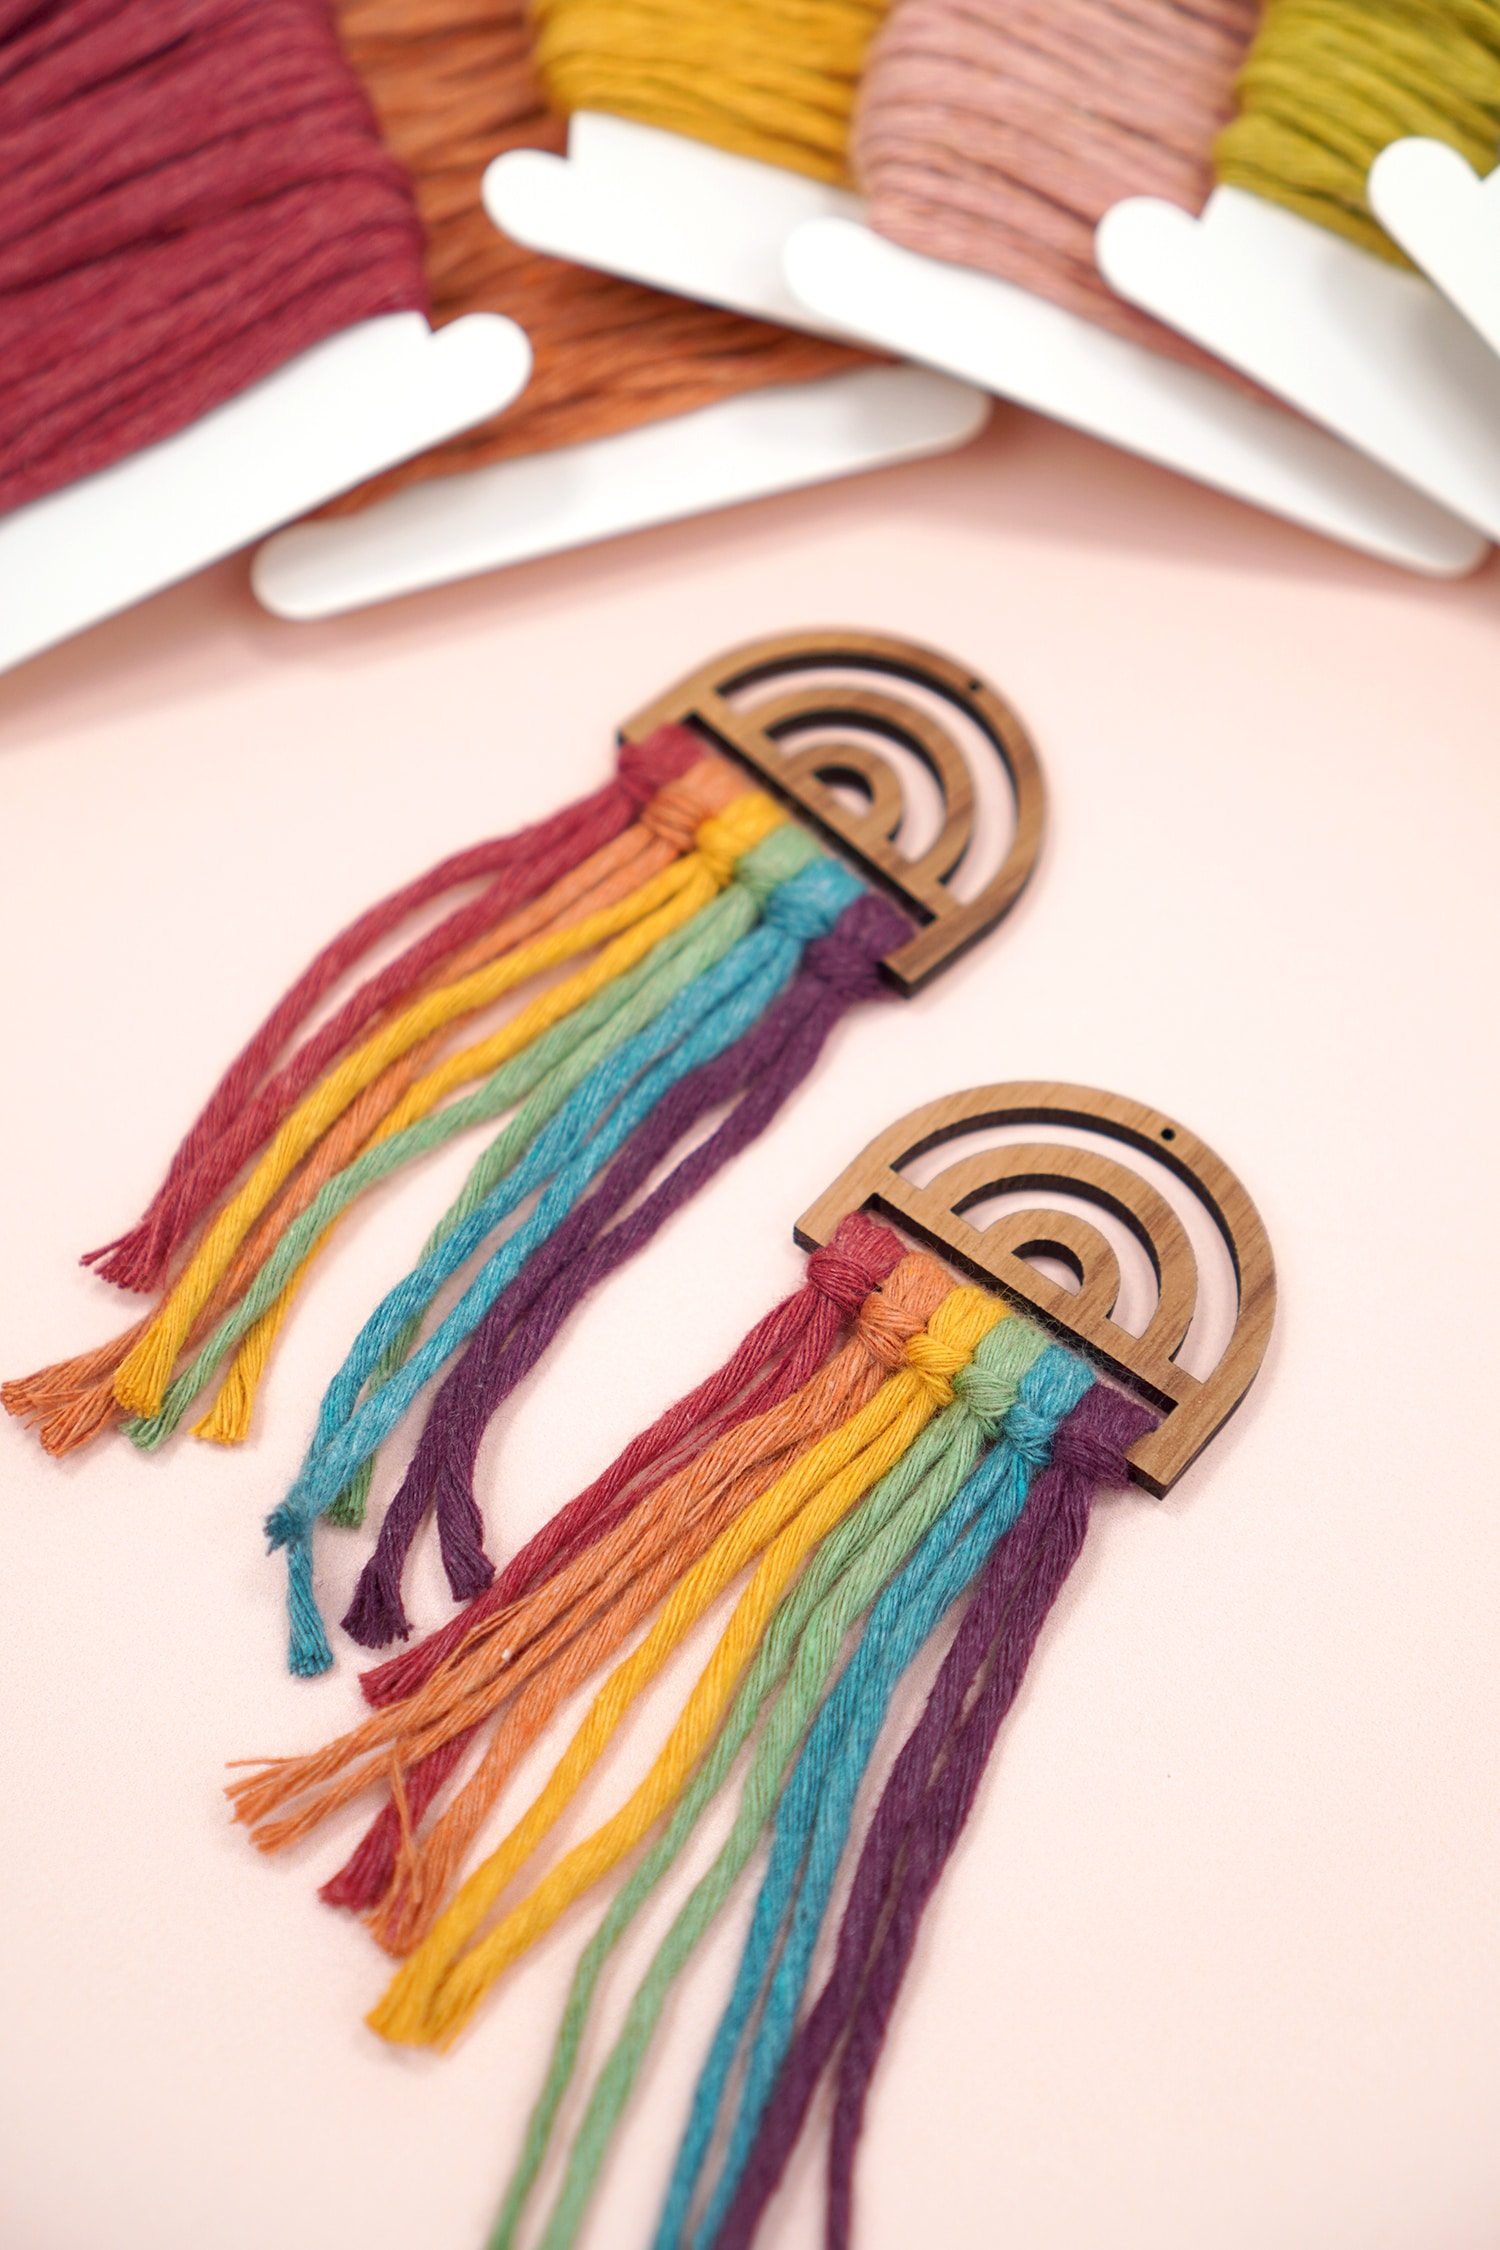 Untrimmed Rainbow Macrame Earrings on peach background with macrame cord